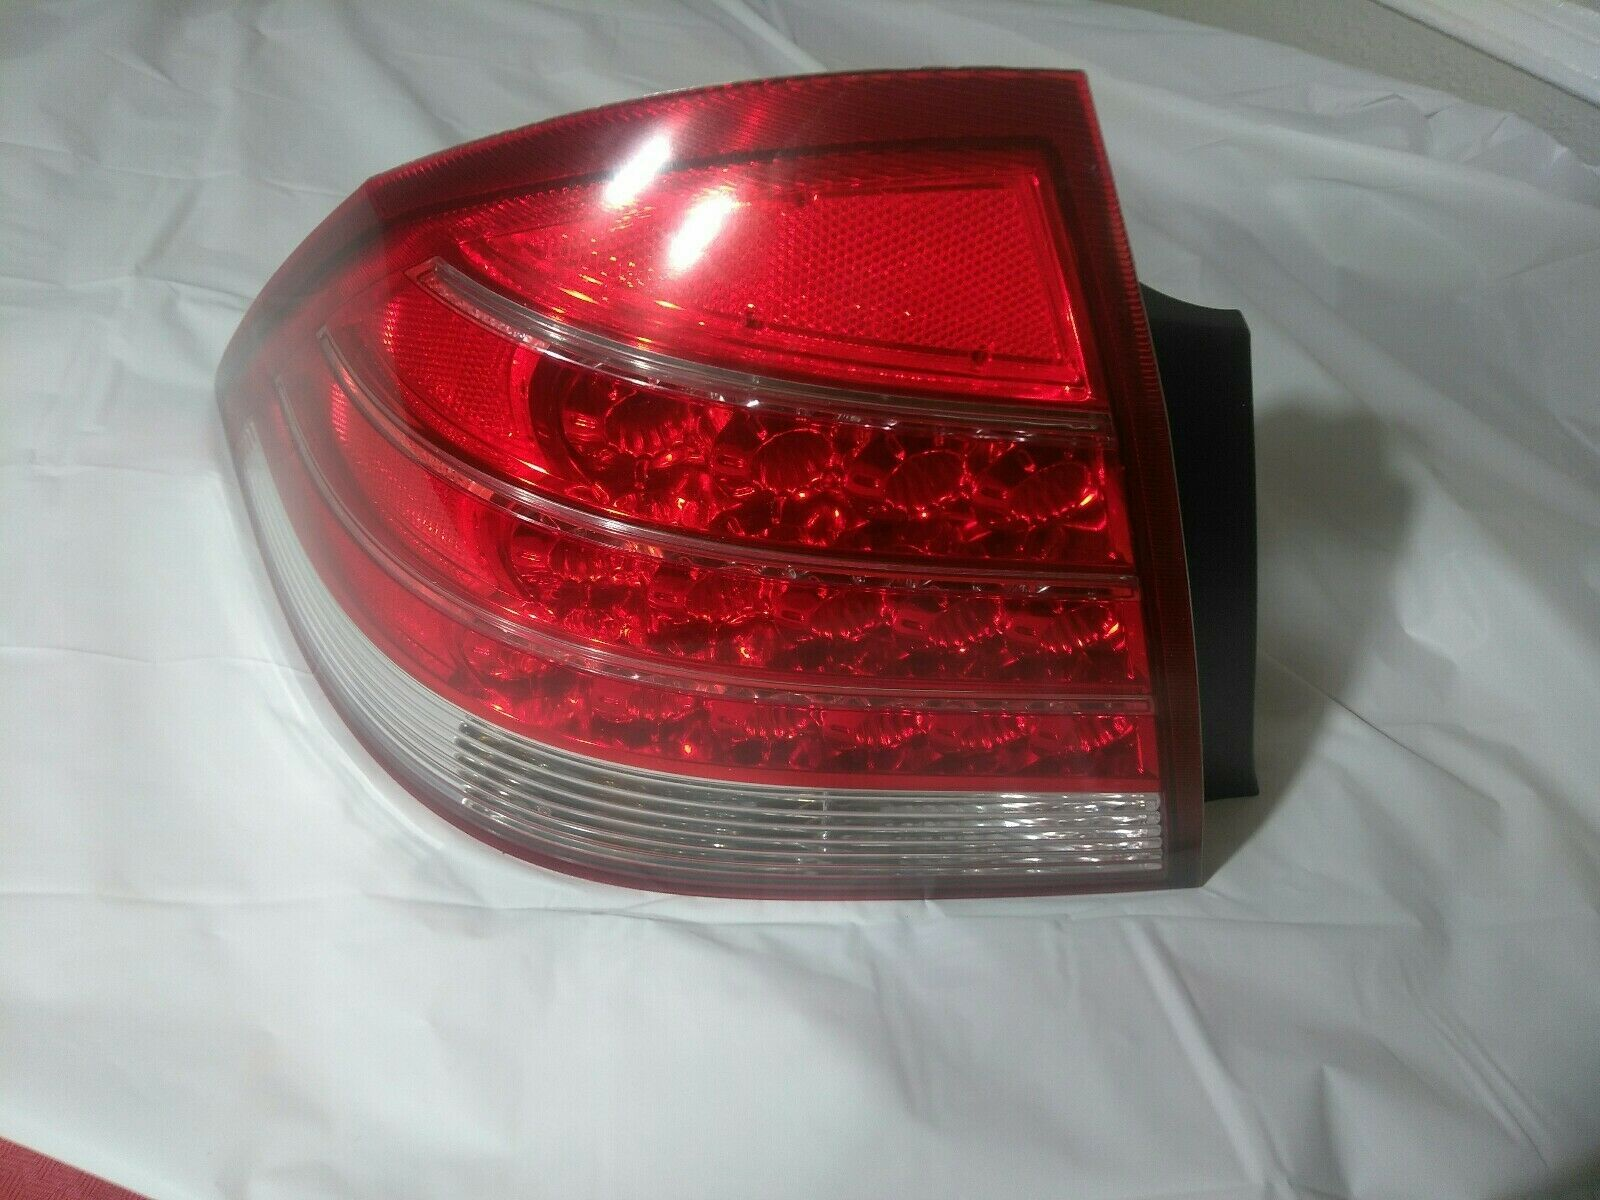 NEW GENUINE MAZDA  2010 2011 2012 CX-7 Rear Left Side Tail Lamp  EH44-51-160F